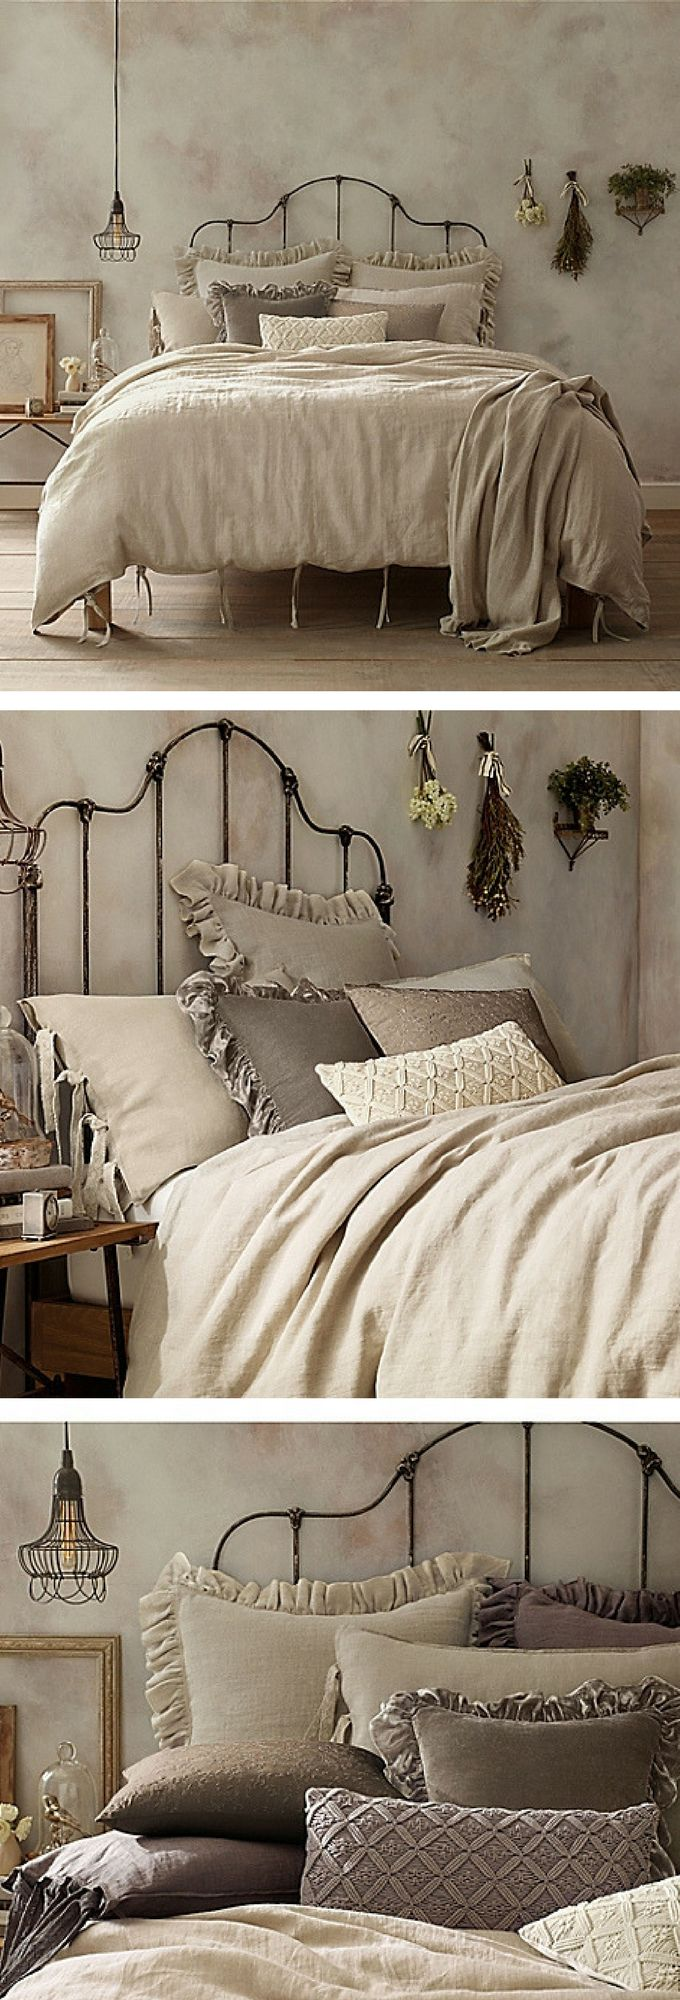 Add a touch of understated luxury to your bedroom with the casual yet cozy Wamsutta Vintage Washed Linen Duvet Cover. Crafted from the finest Belgian flax, the ultra-soft linen pillow sham brings a relaxed, lived-in look to any room's décor. #vintagestyle